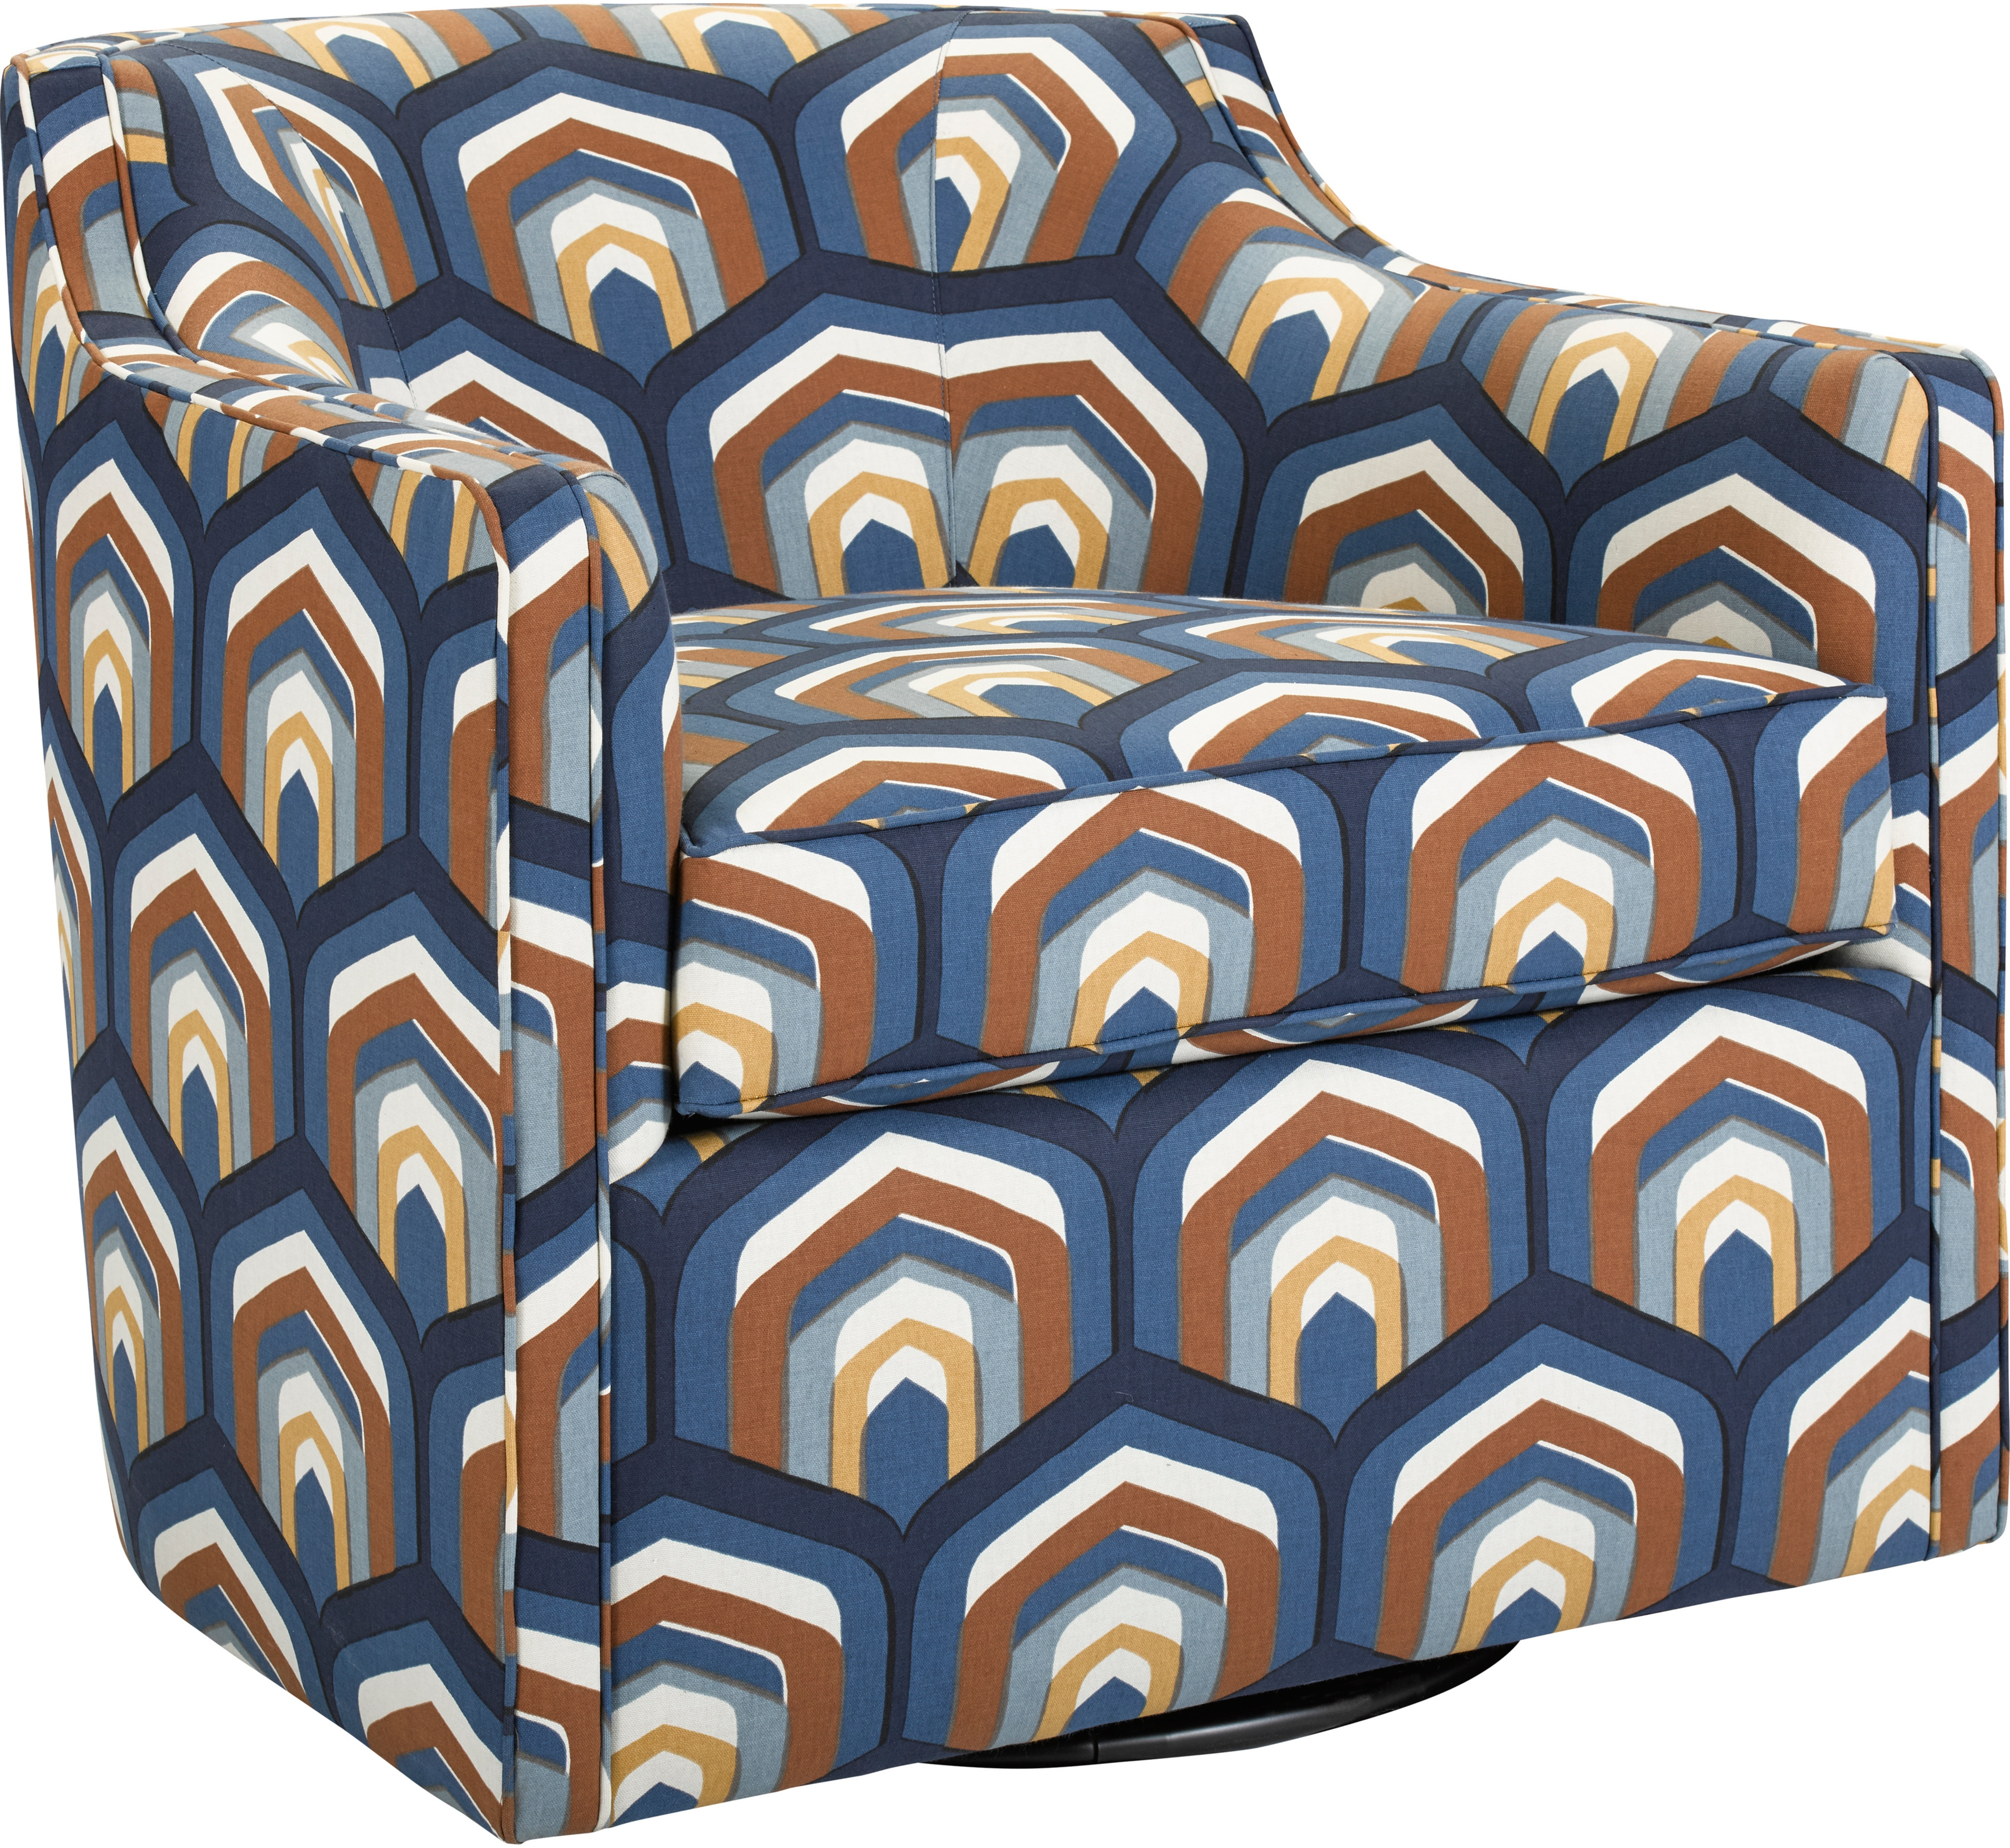 Pleasing Gayle 9079 8 Swivel Chair 9079 8 Sofas And Sectionals Alphanode Cool Chair Designs And Ideas Alphanodeonline